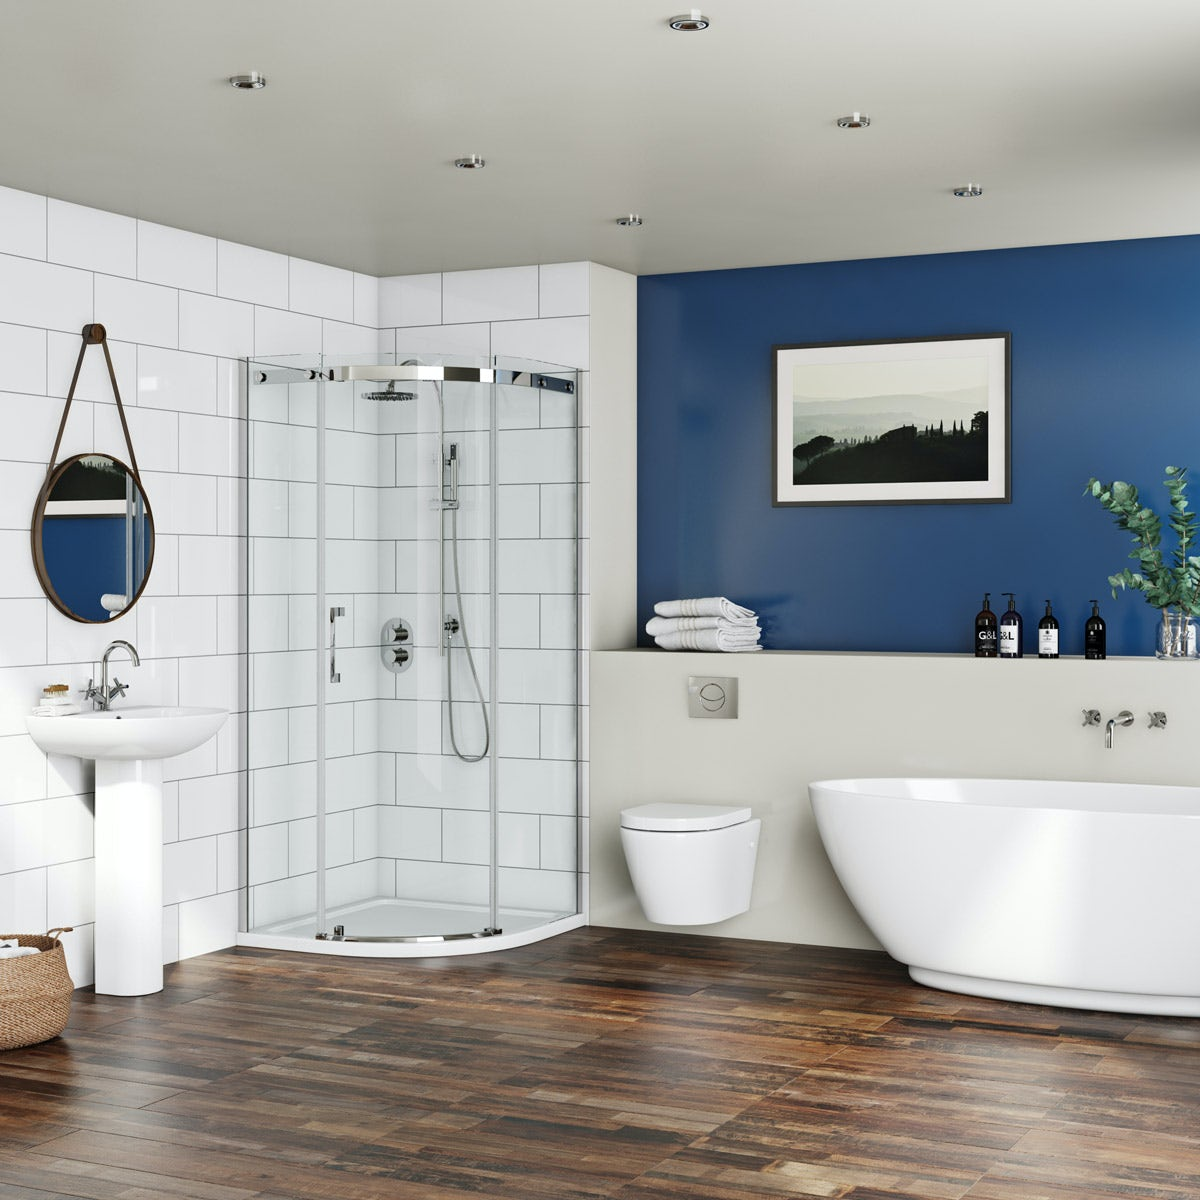 Mode Harrison complete bathroom suite with freestanding ...